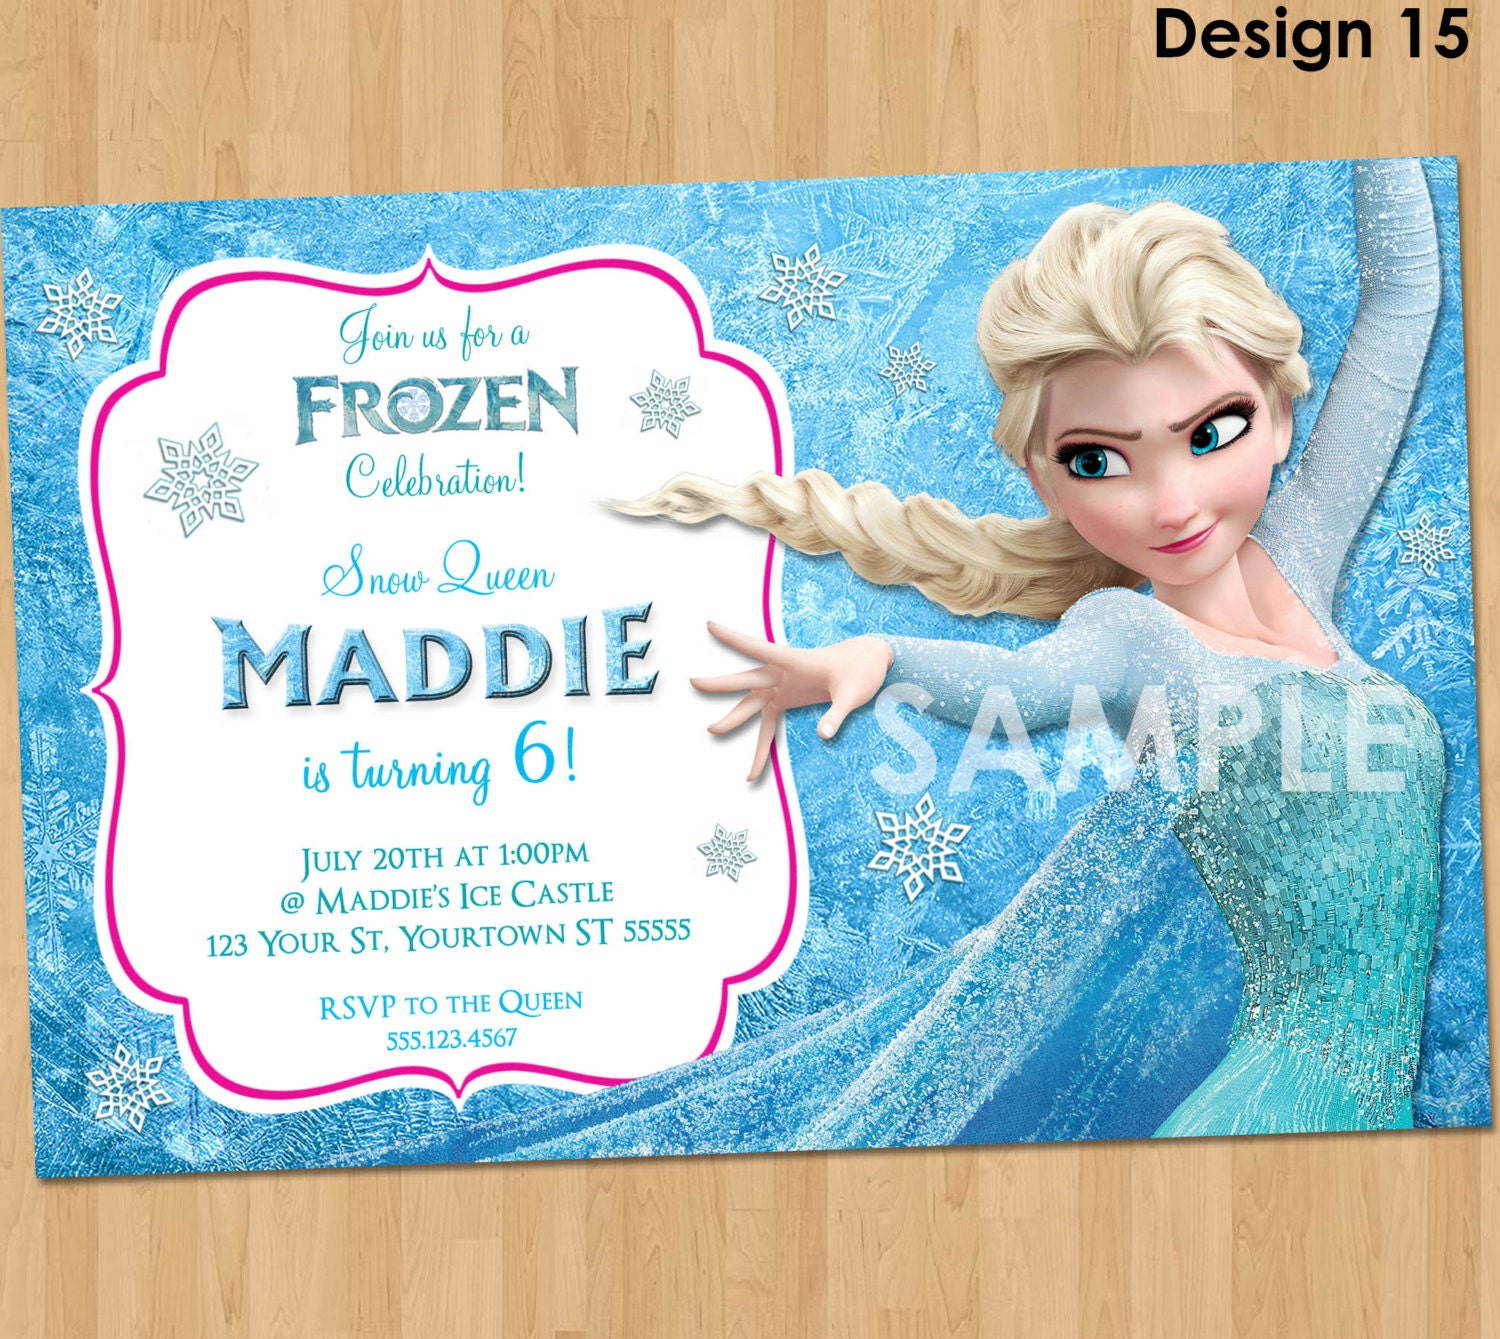 Frozen Party Invitation Ideas and get inspiration to create nice invitation ideas